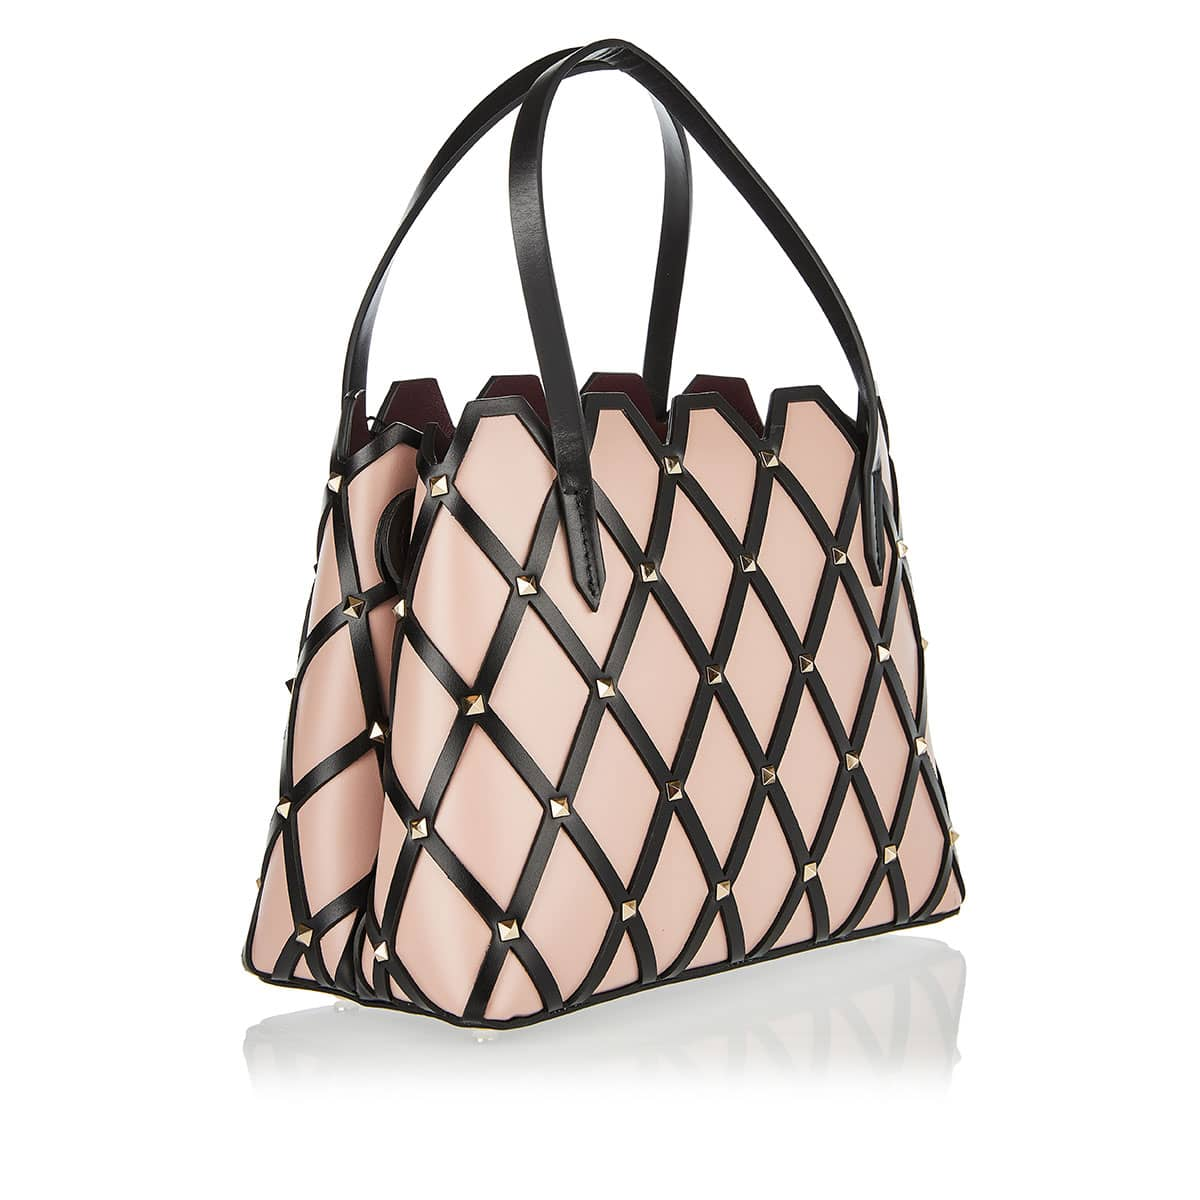 Beehive small studded tote